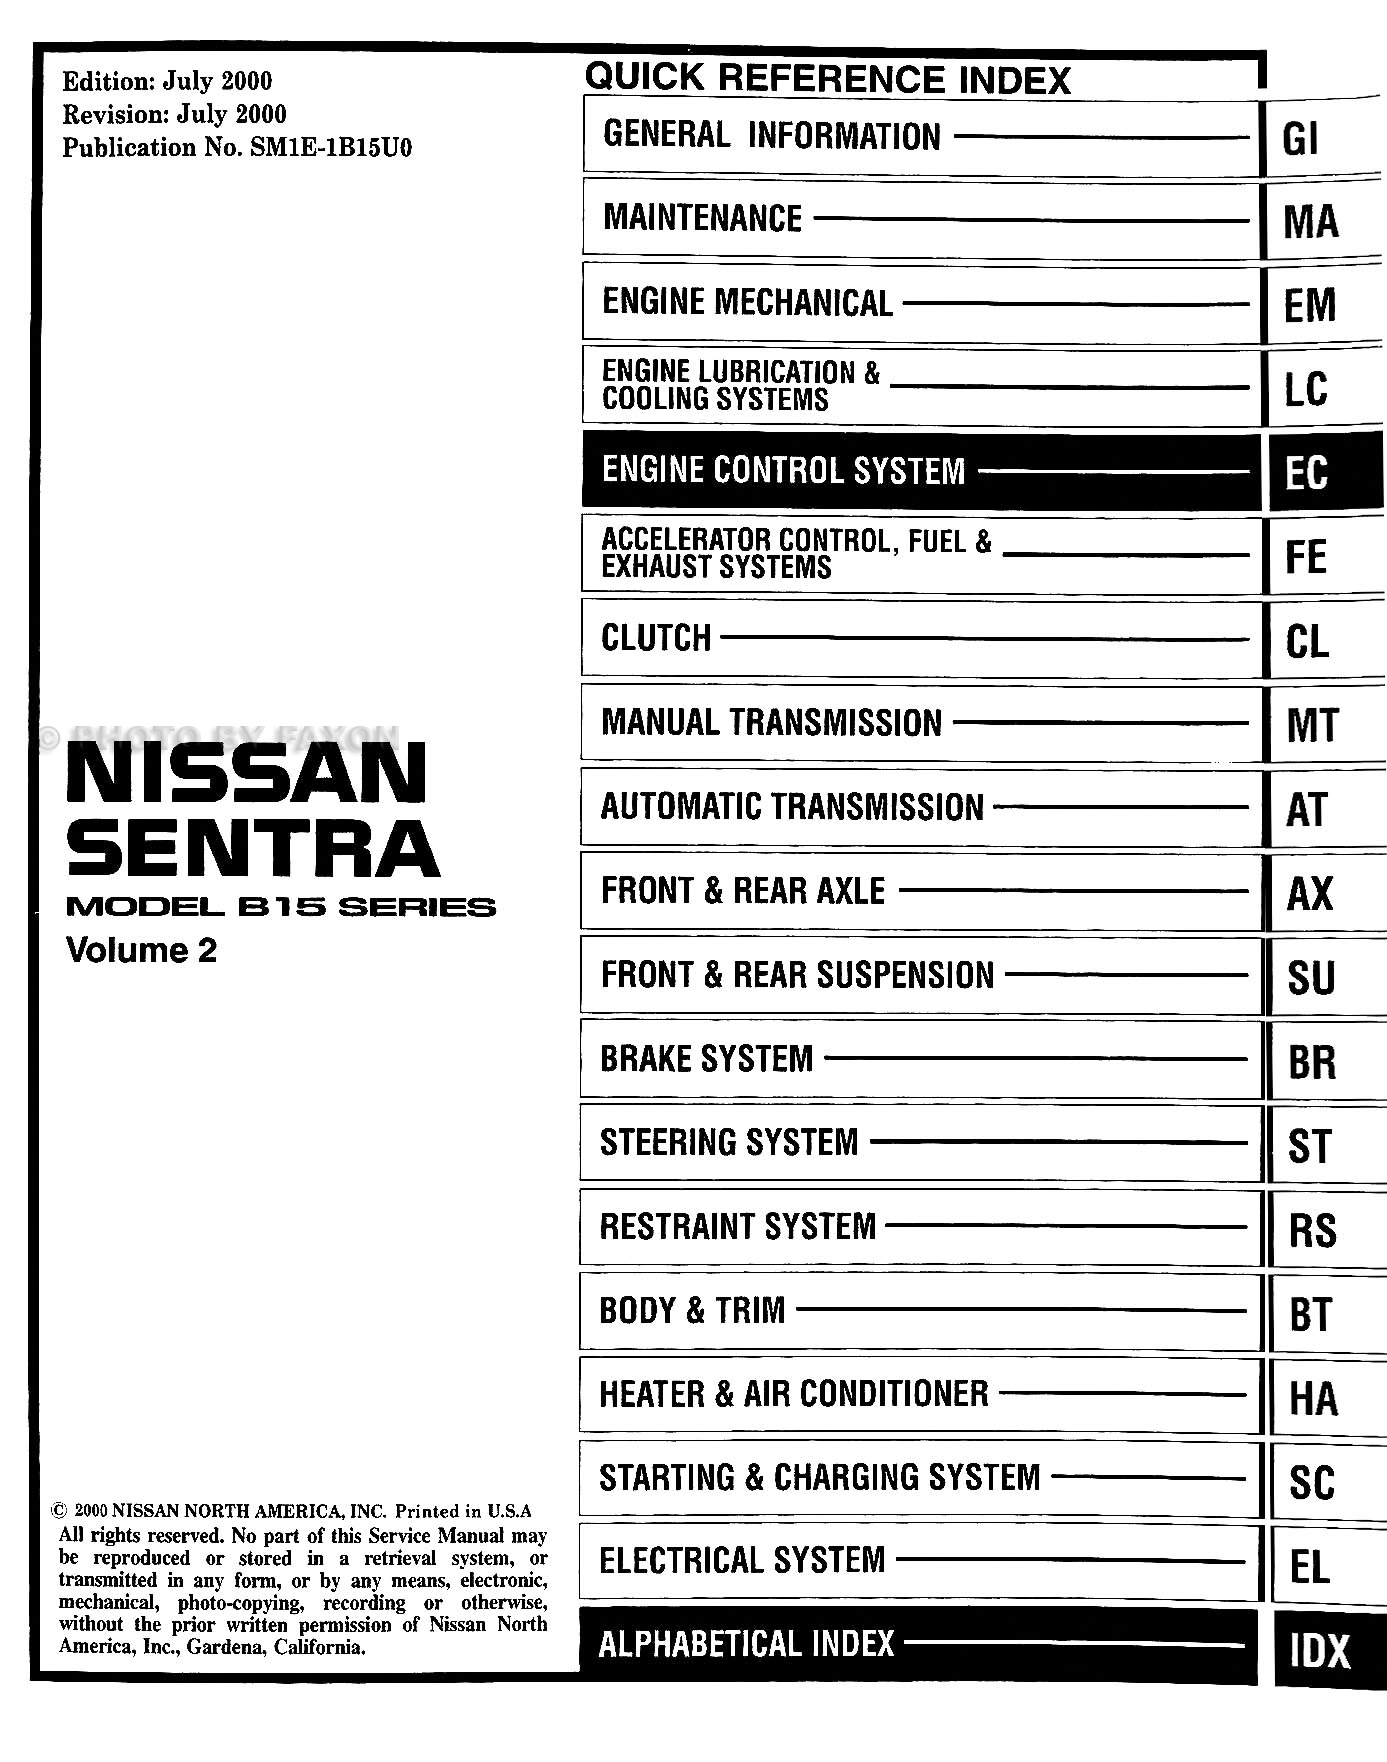 hight resolution of 1994 nissan sentra wiring diagram 1994 nissan sentra nissan sentra fuse box diagram nissan sentra wiring